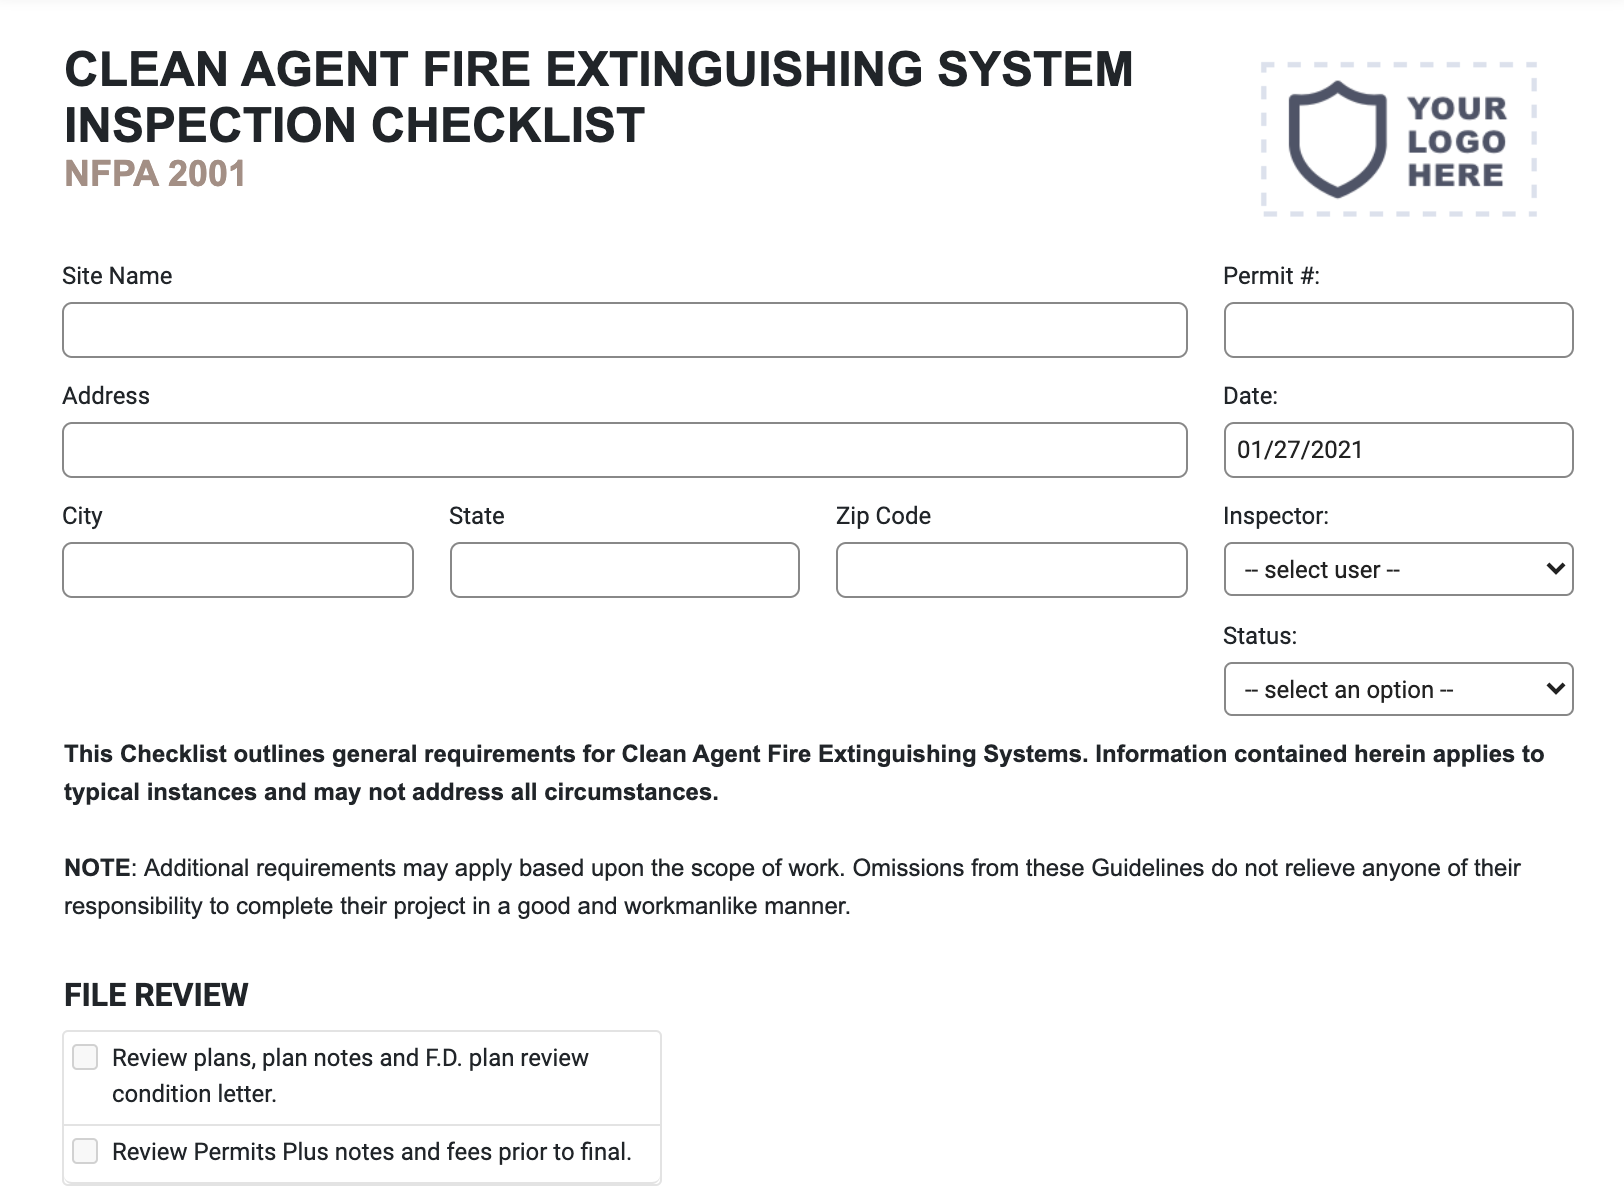 Clean Agent Fire Extinguishing System Inspection Checklist